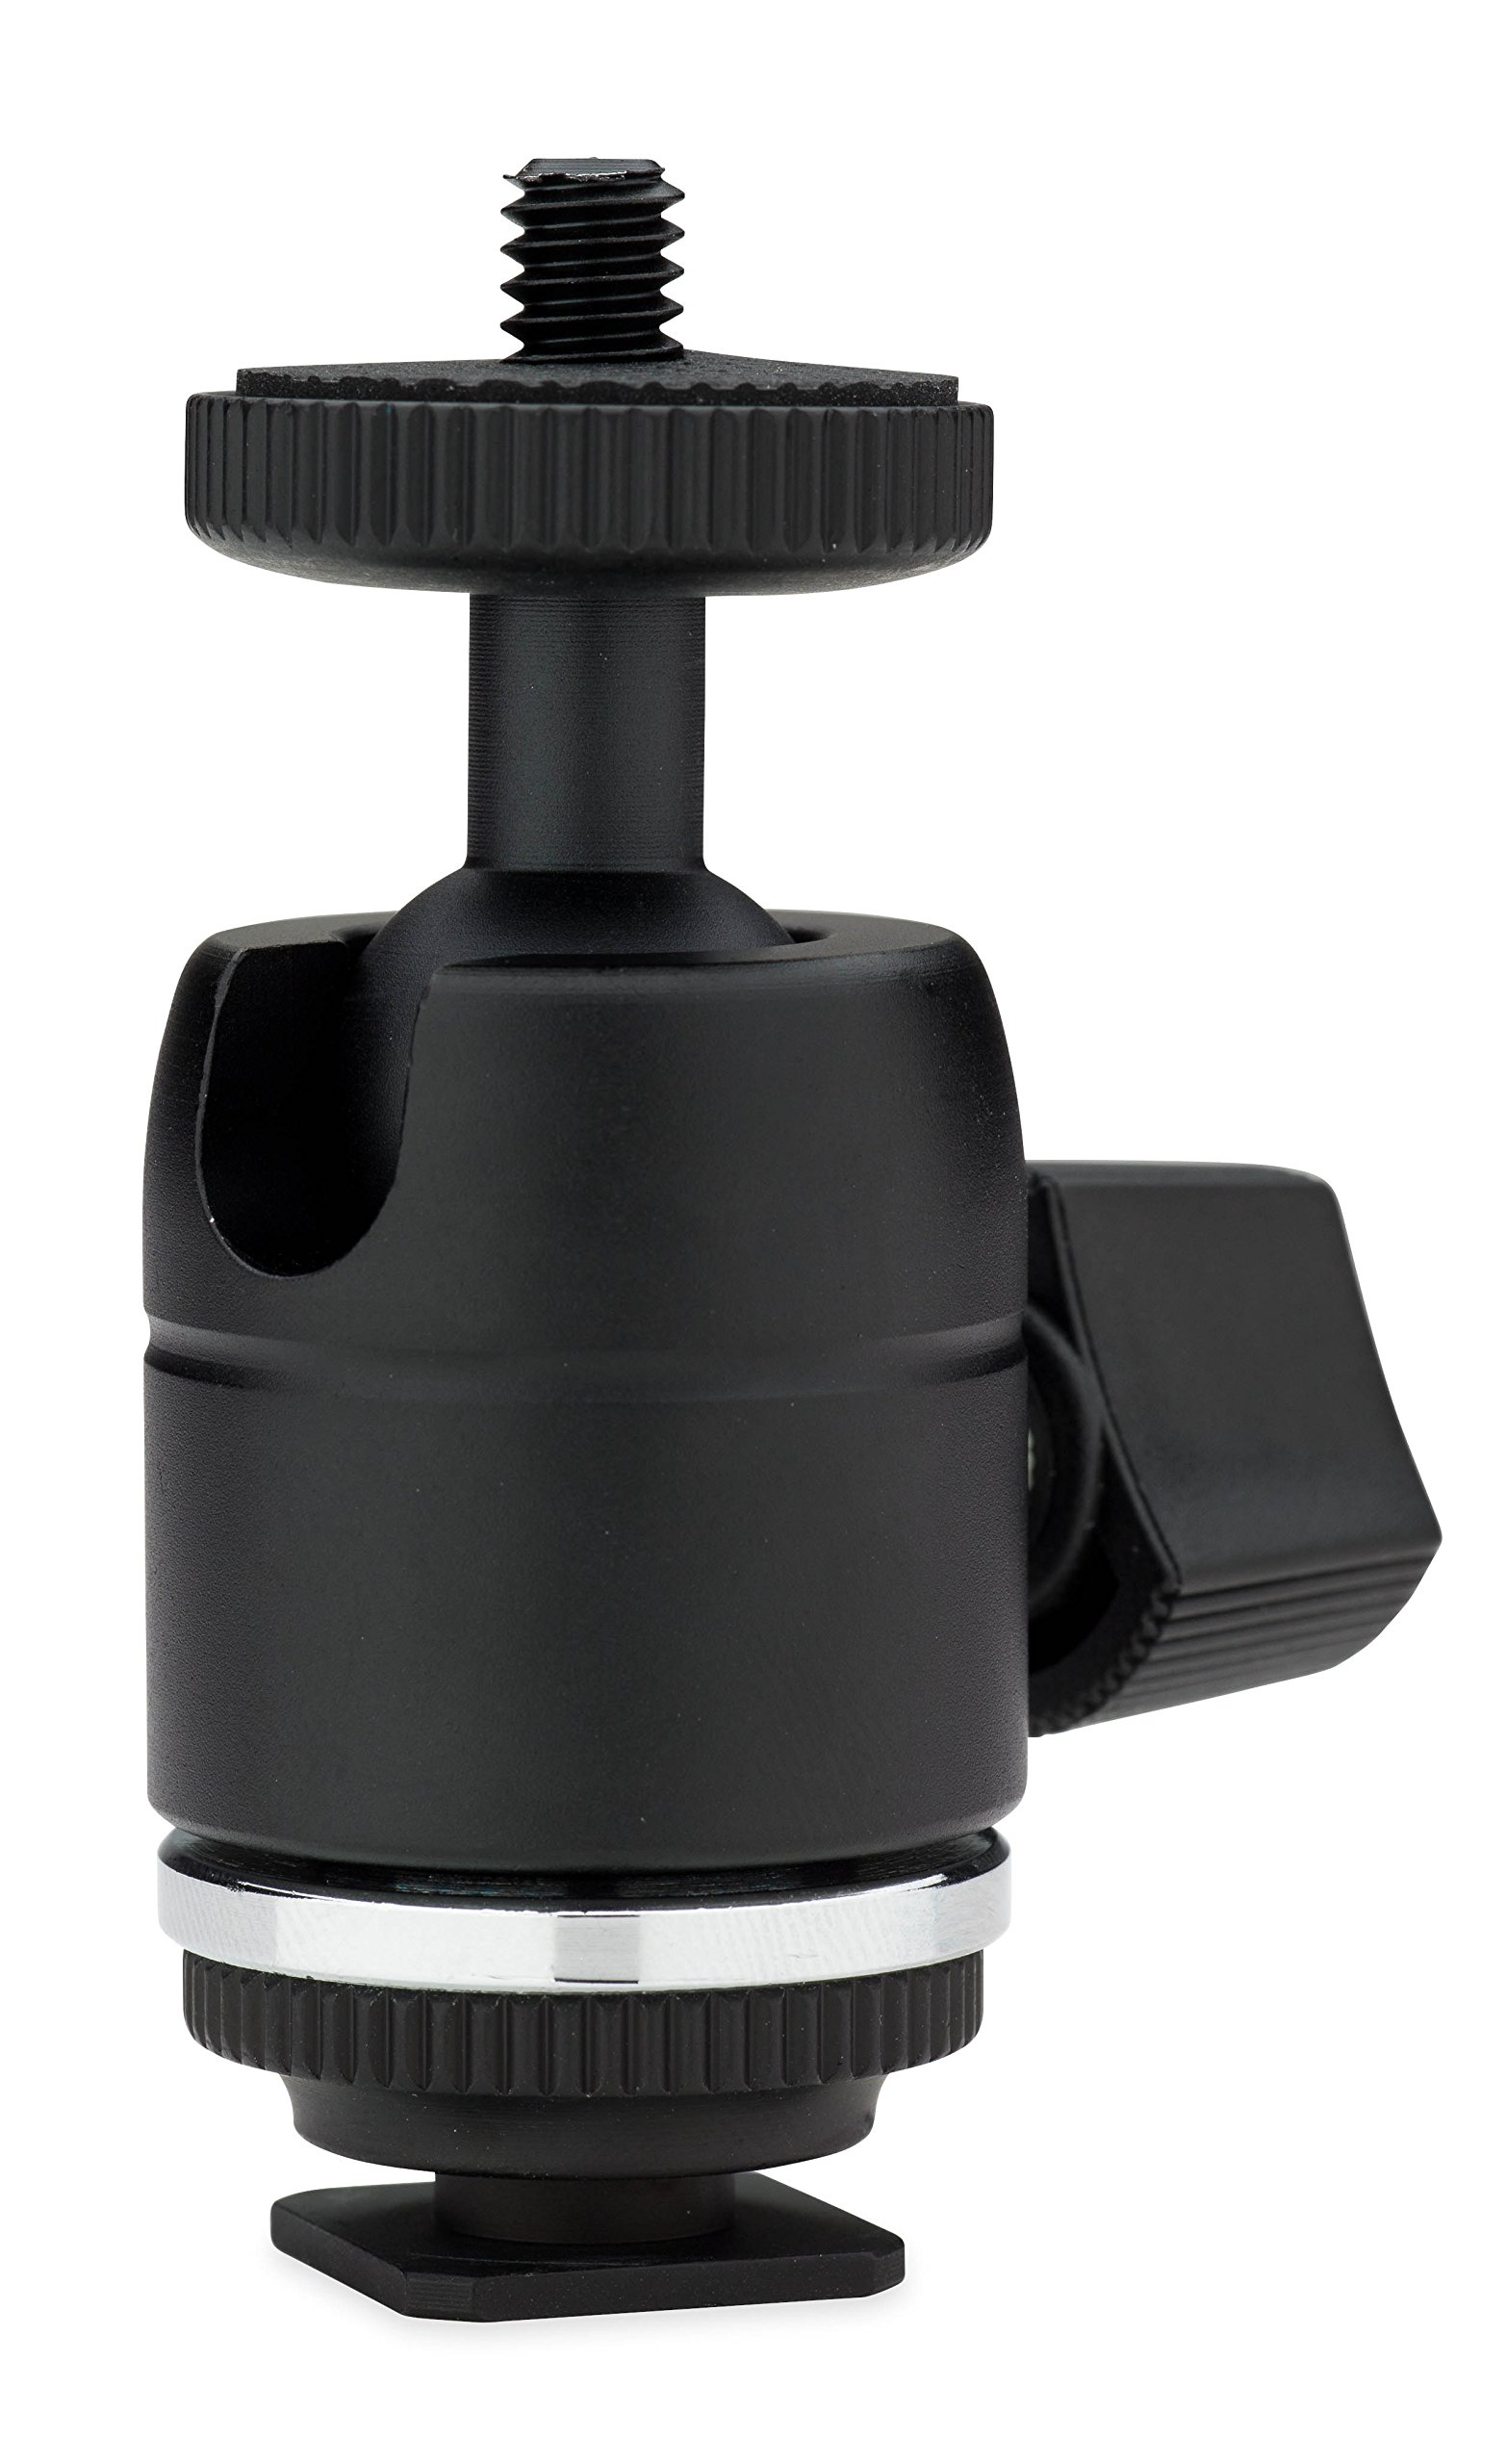 Kupo KG010011 Mini Ball Head with Hot Shoe Adapter (Black)